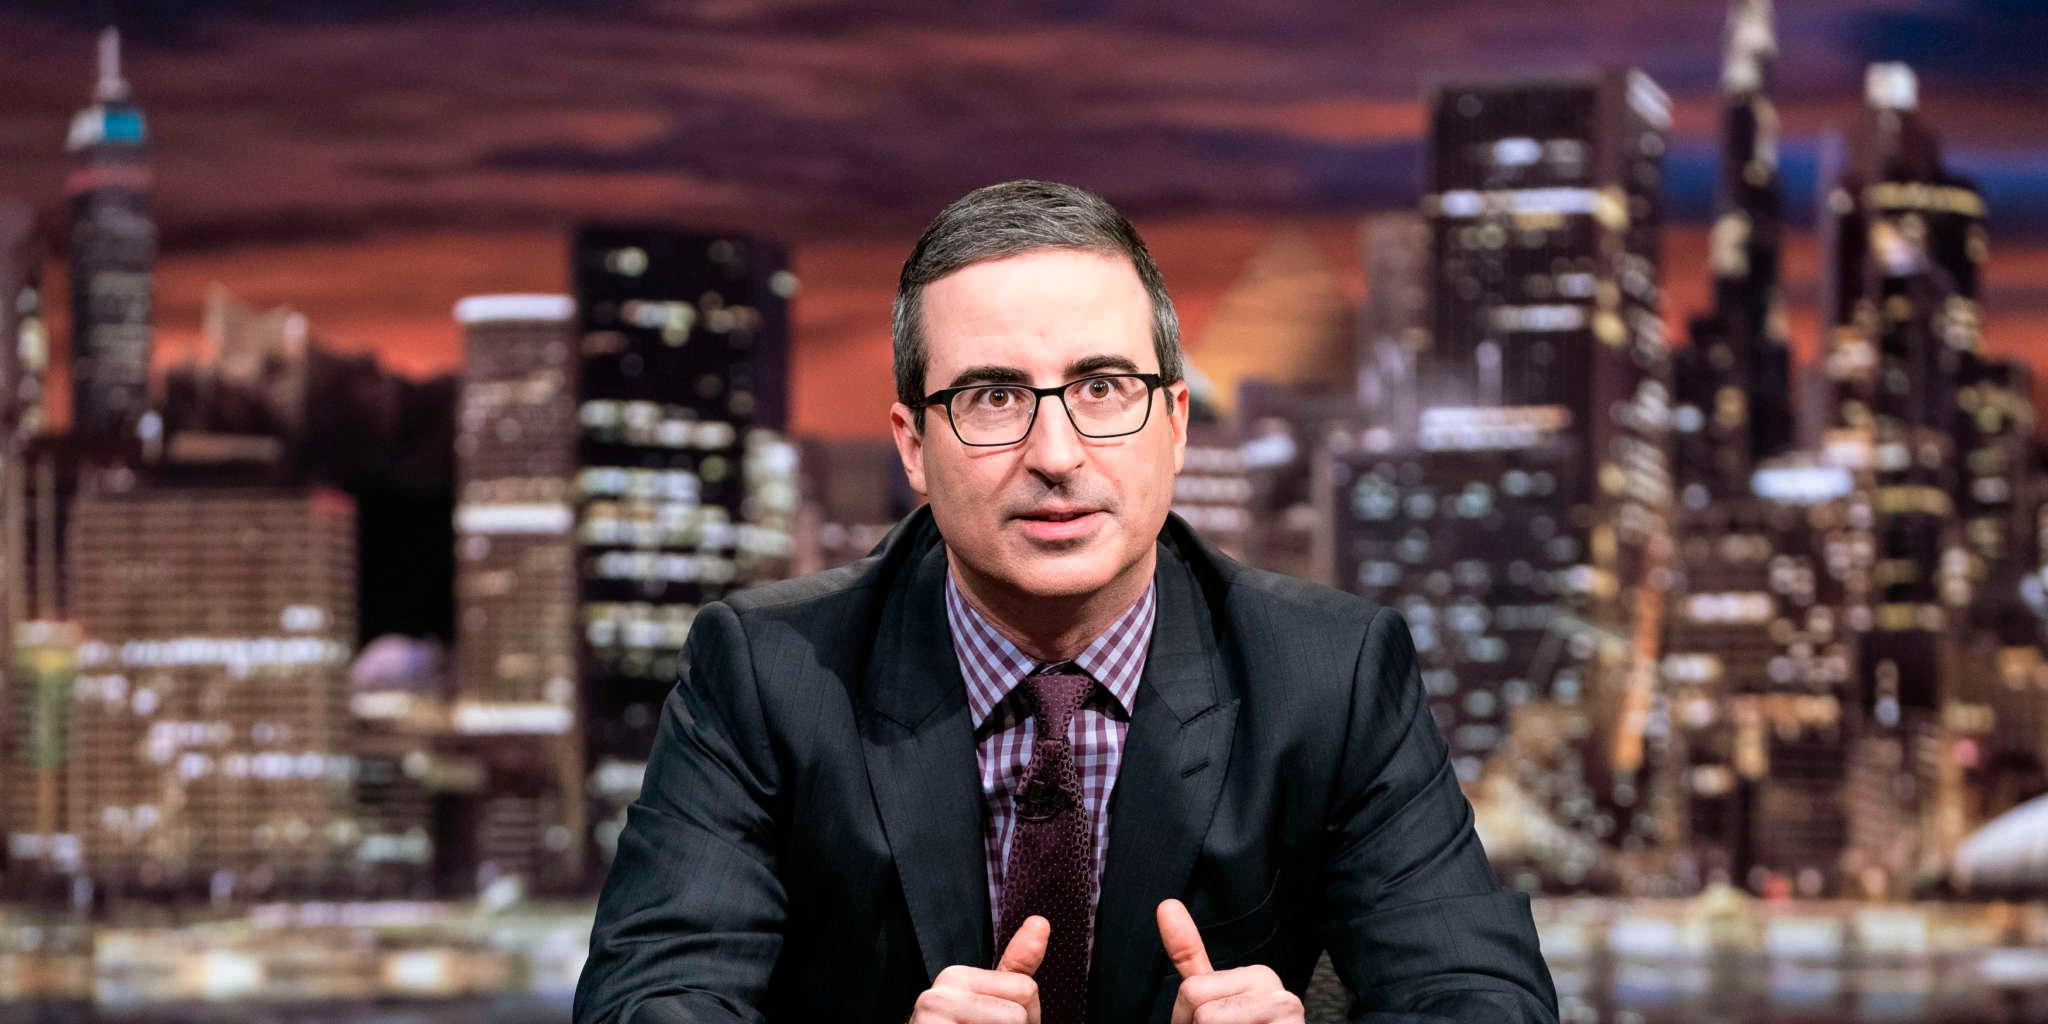 John Oliver In Tears While Calling Out Donald Trump And Discussing Police Brutality!